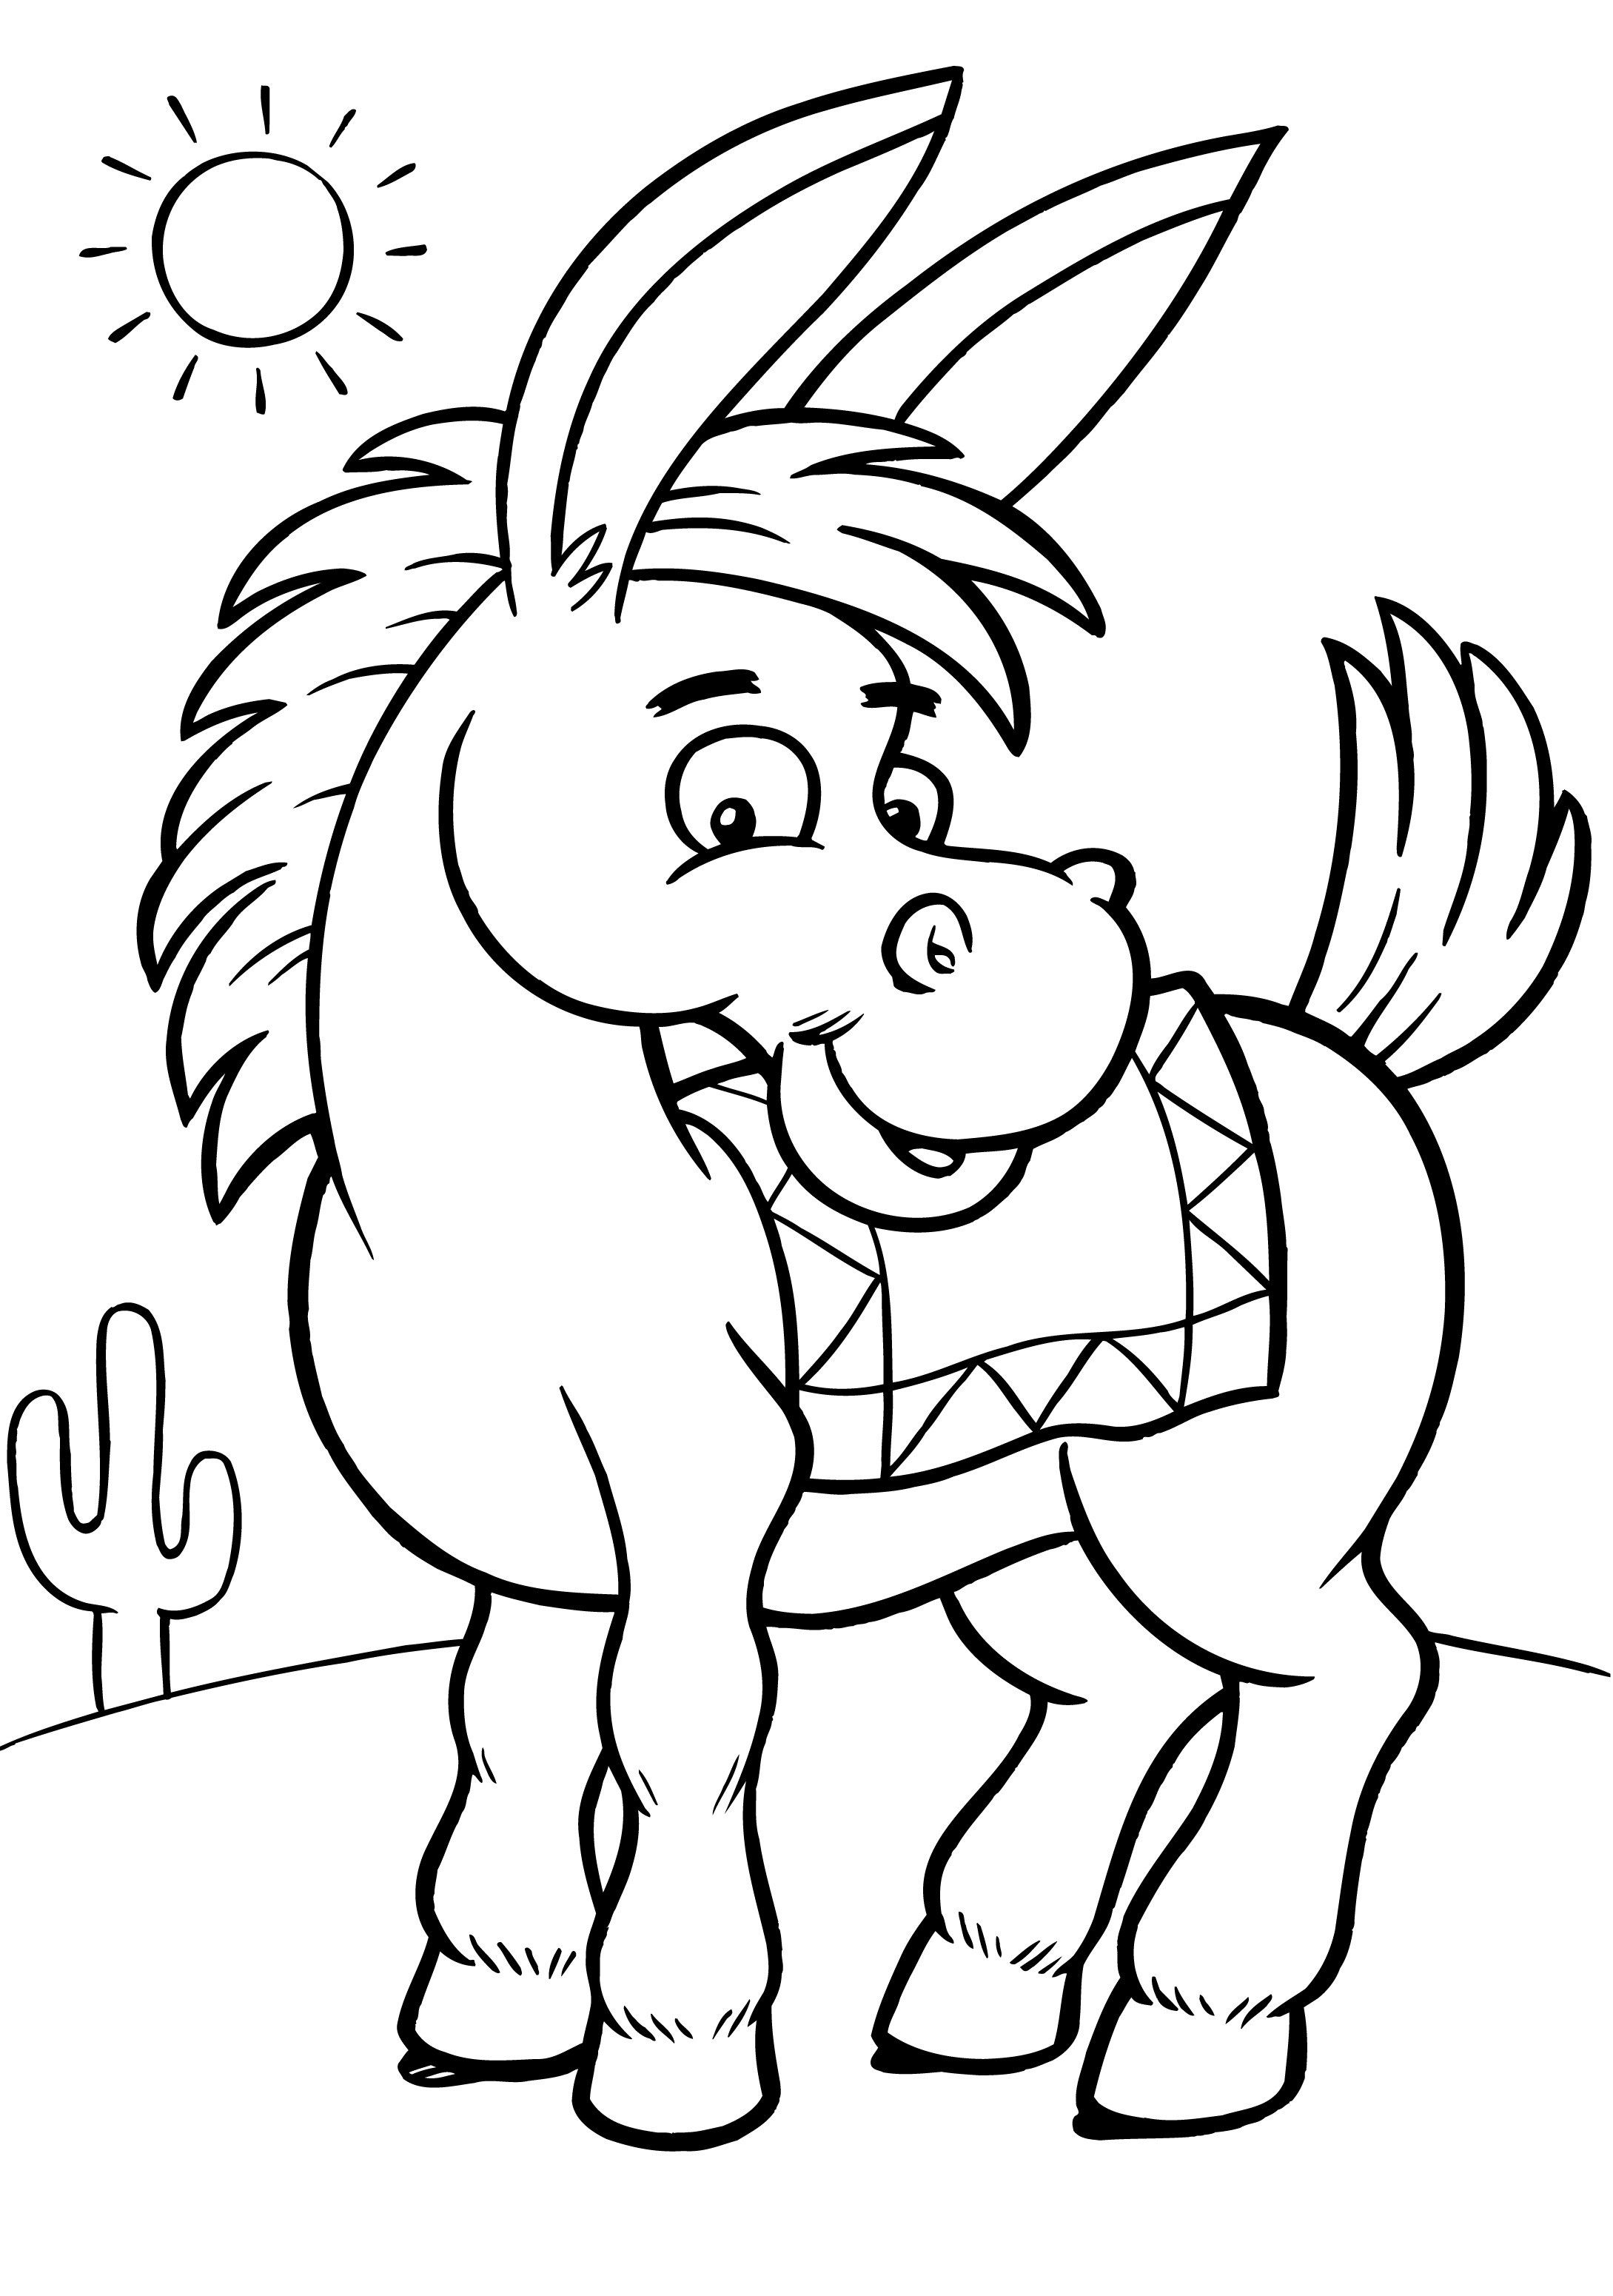 donkey pictures to color free printable donkey coloring pages for kids pictures donkey to color